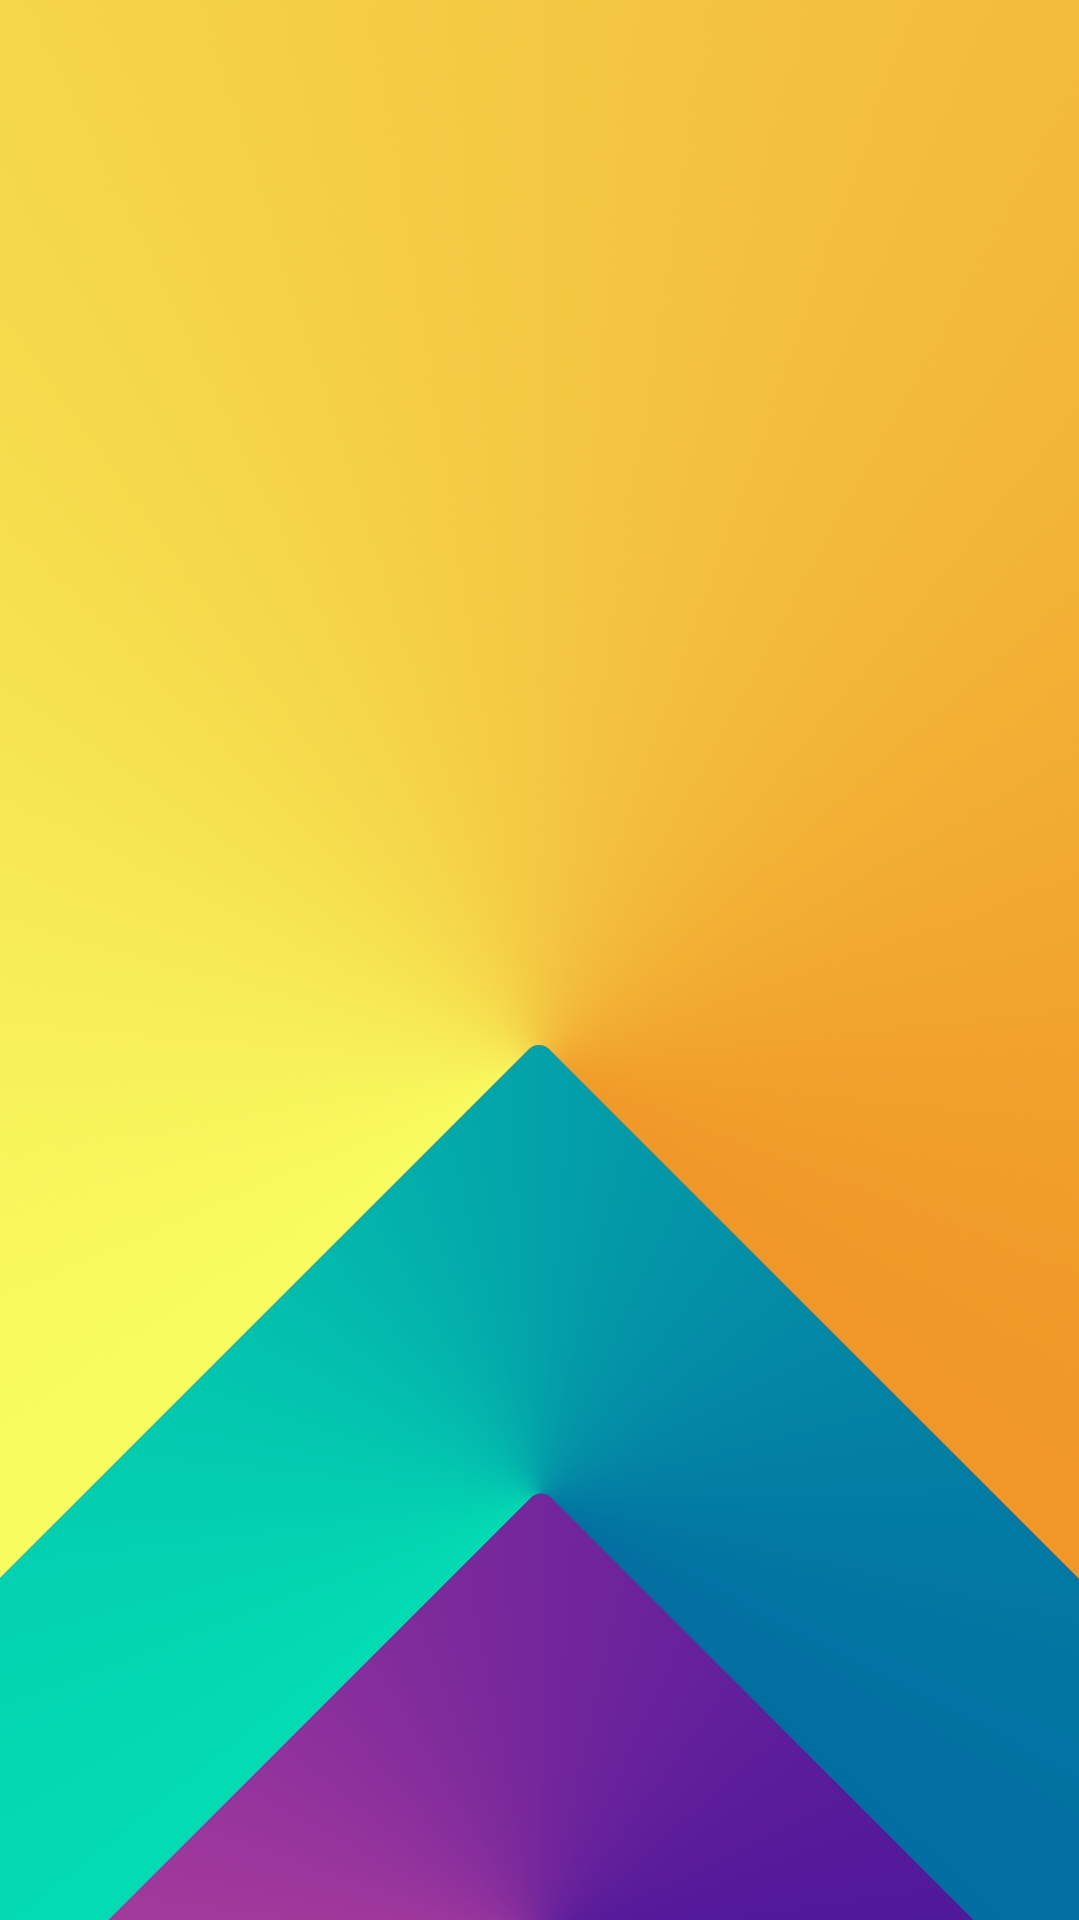 Cute Love You Wallpapers 3d Triangle Colors Iphone Wallpaper Iphone Wallpapers